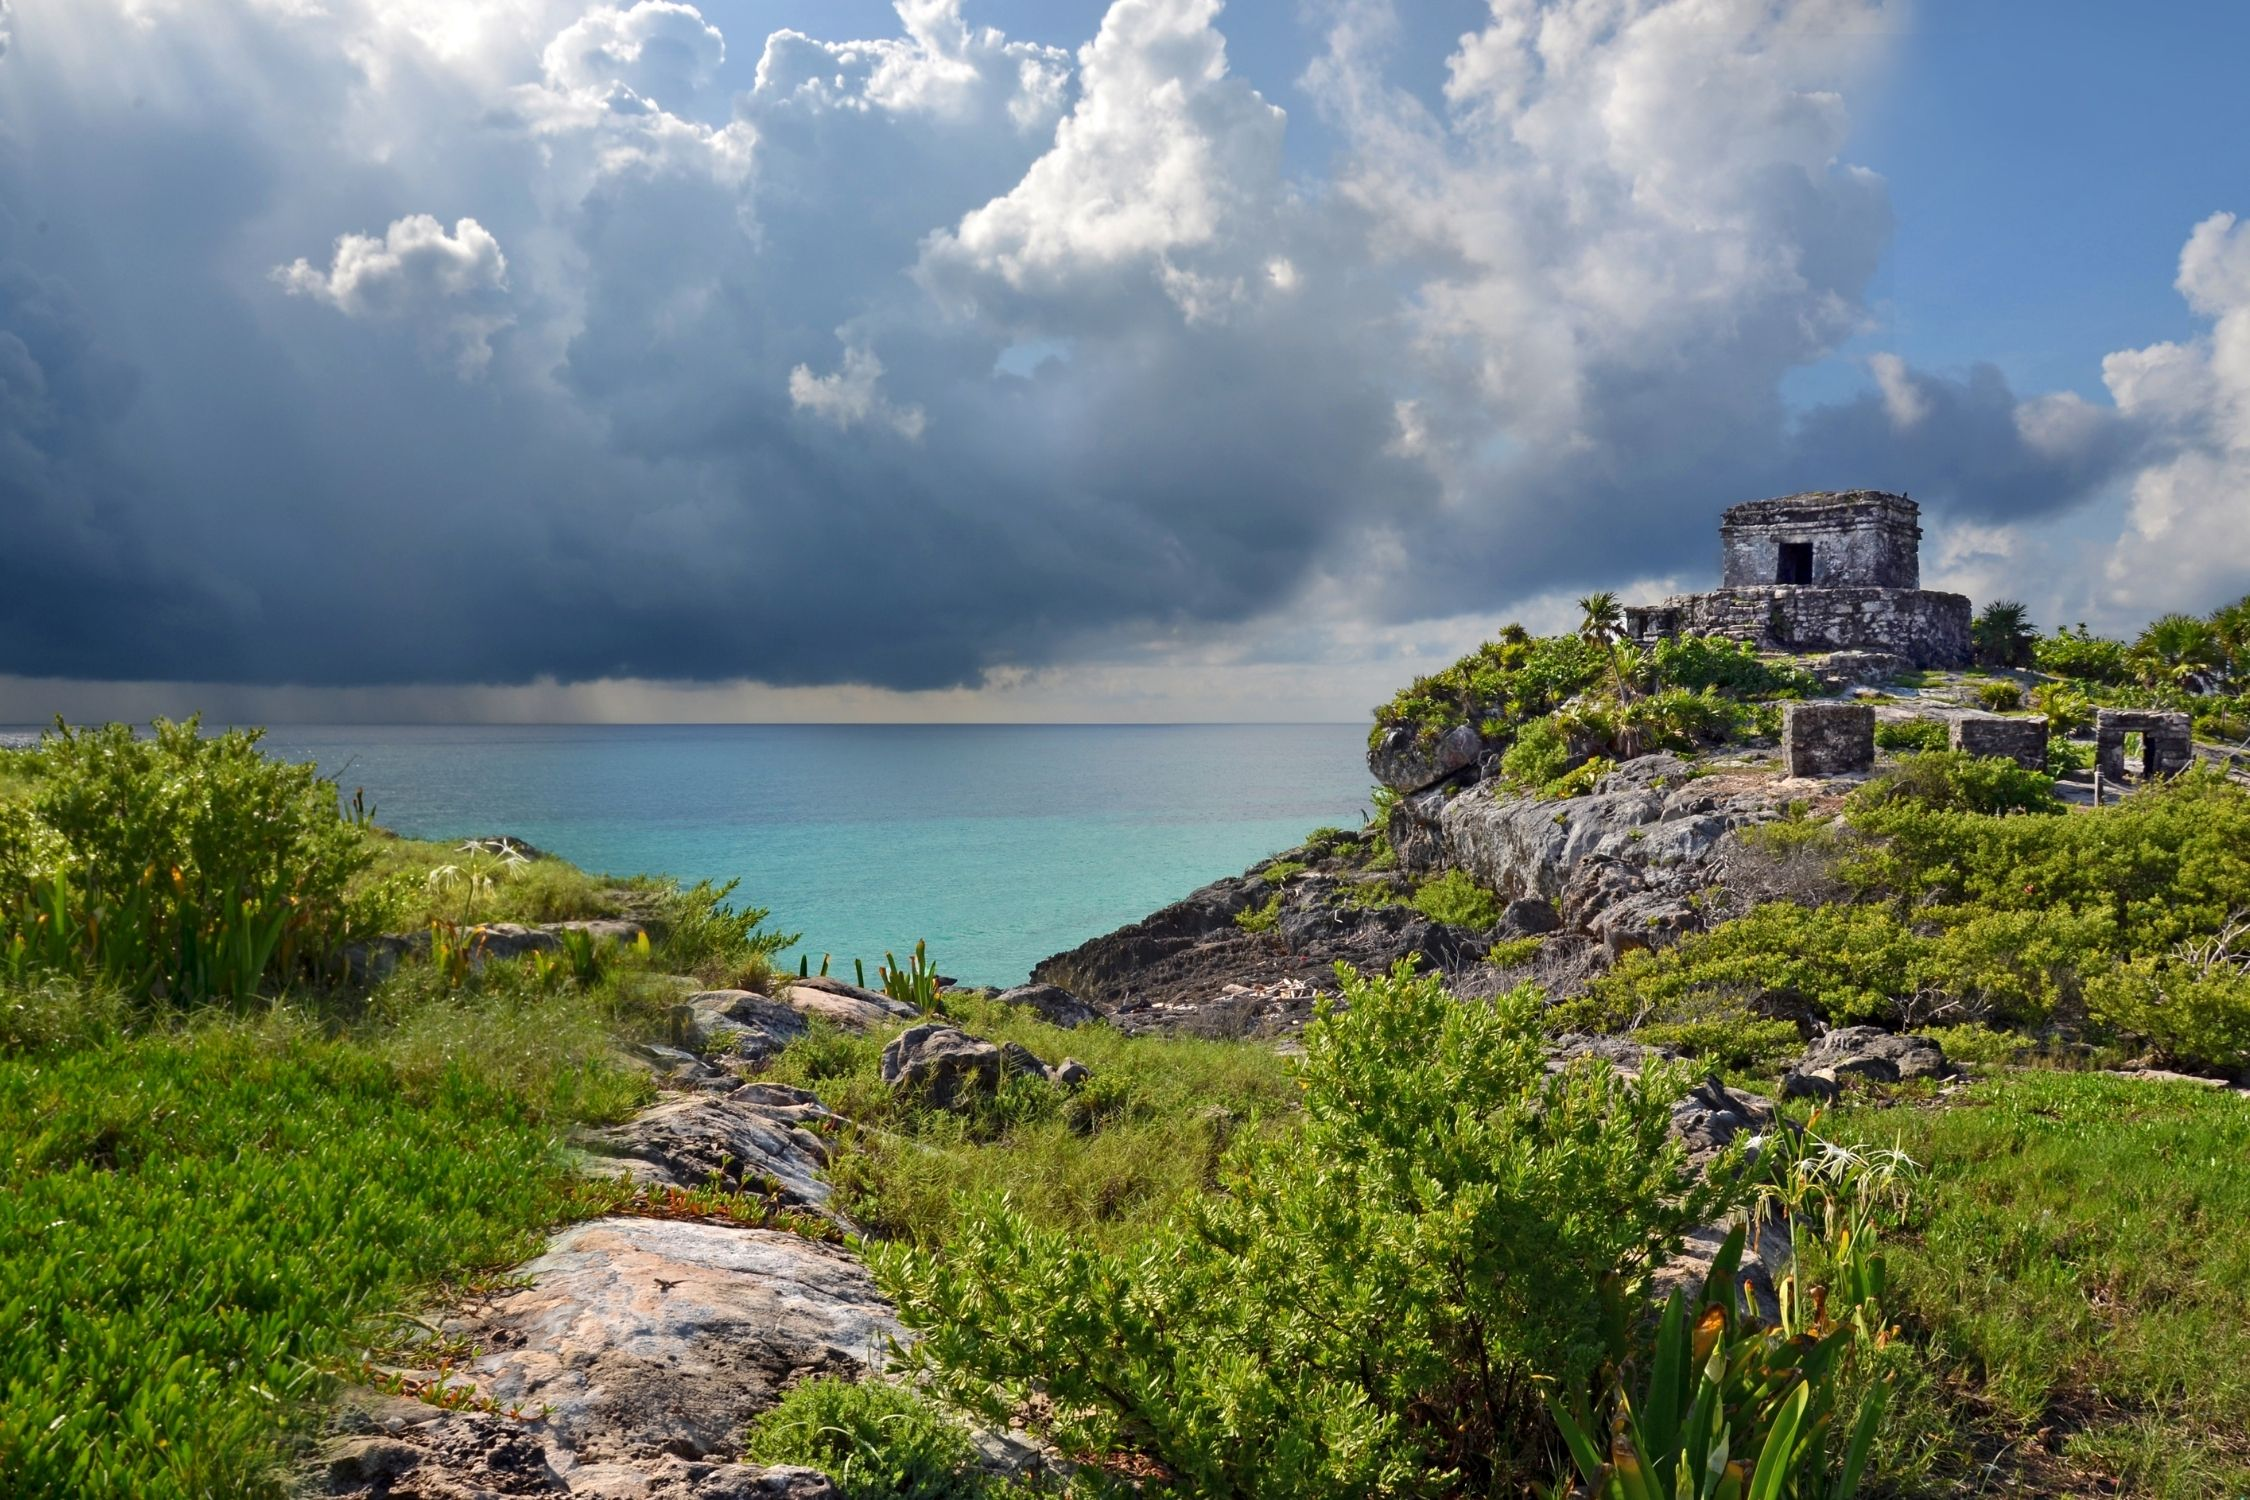 Tulum Weather can get some rain on the famous sites